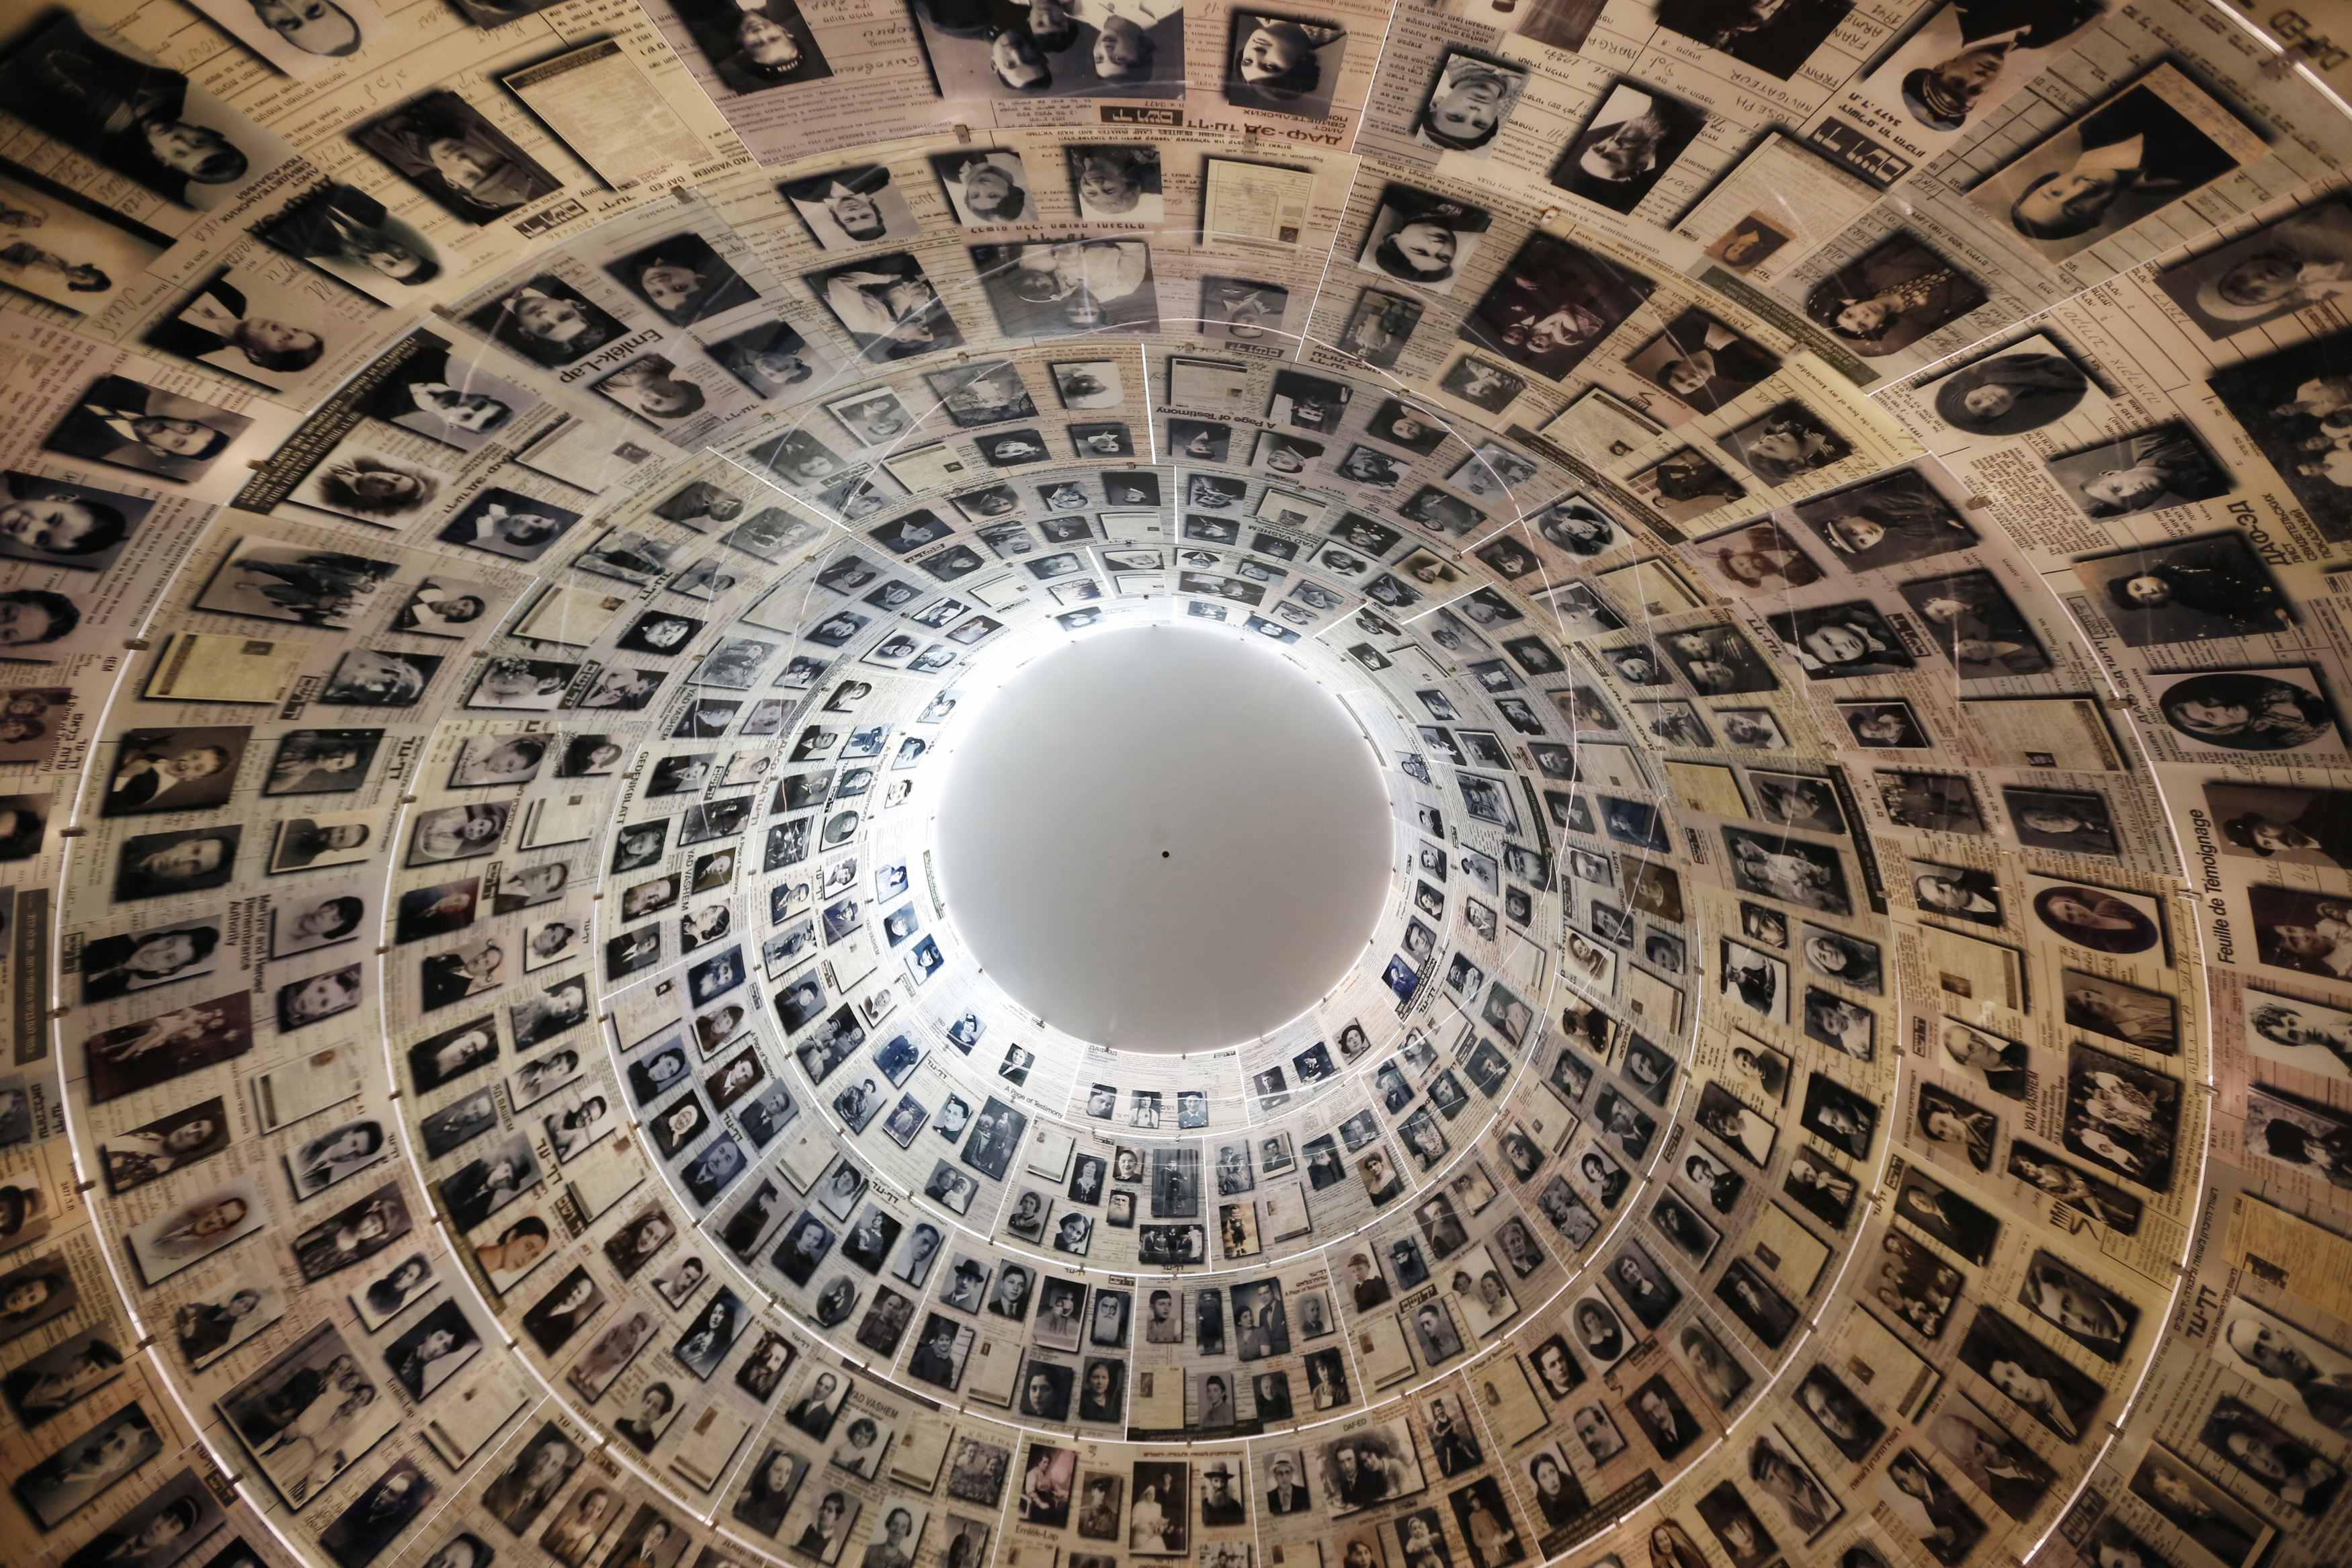 The conical ceiling of the Hall of Names is pictured during a visit by US President Barack Obama (not pictured) at the Yad Vashem Holocaust Memorial in Jerusalem.